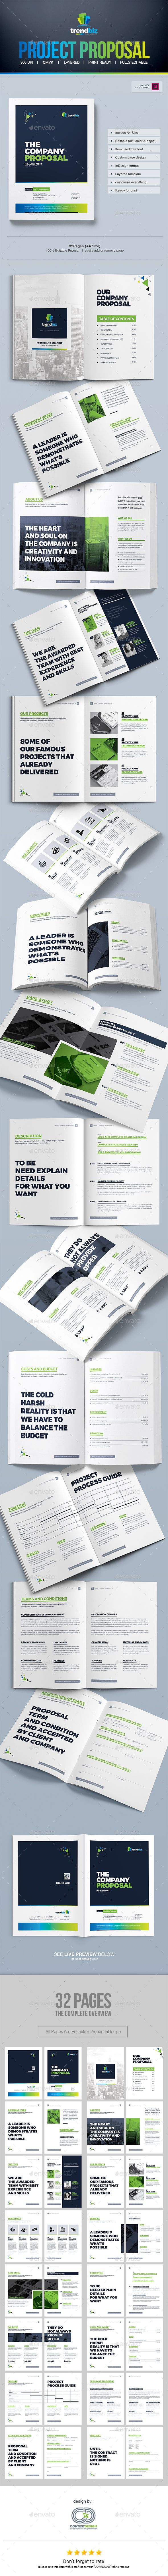 Proposal Template #Design | Project #Proposal | Quotation Template - Proposals & #Invoices Stationery Download here: https://graphicriver.net/item/proposal-template-design-project-proposal-quotation-template/19487580?ref=alena994